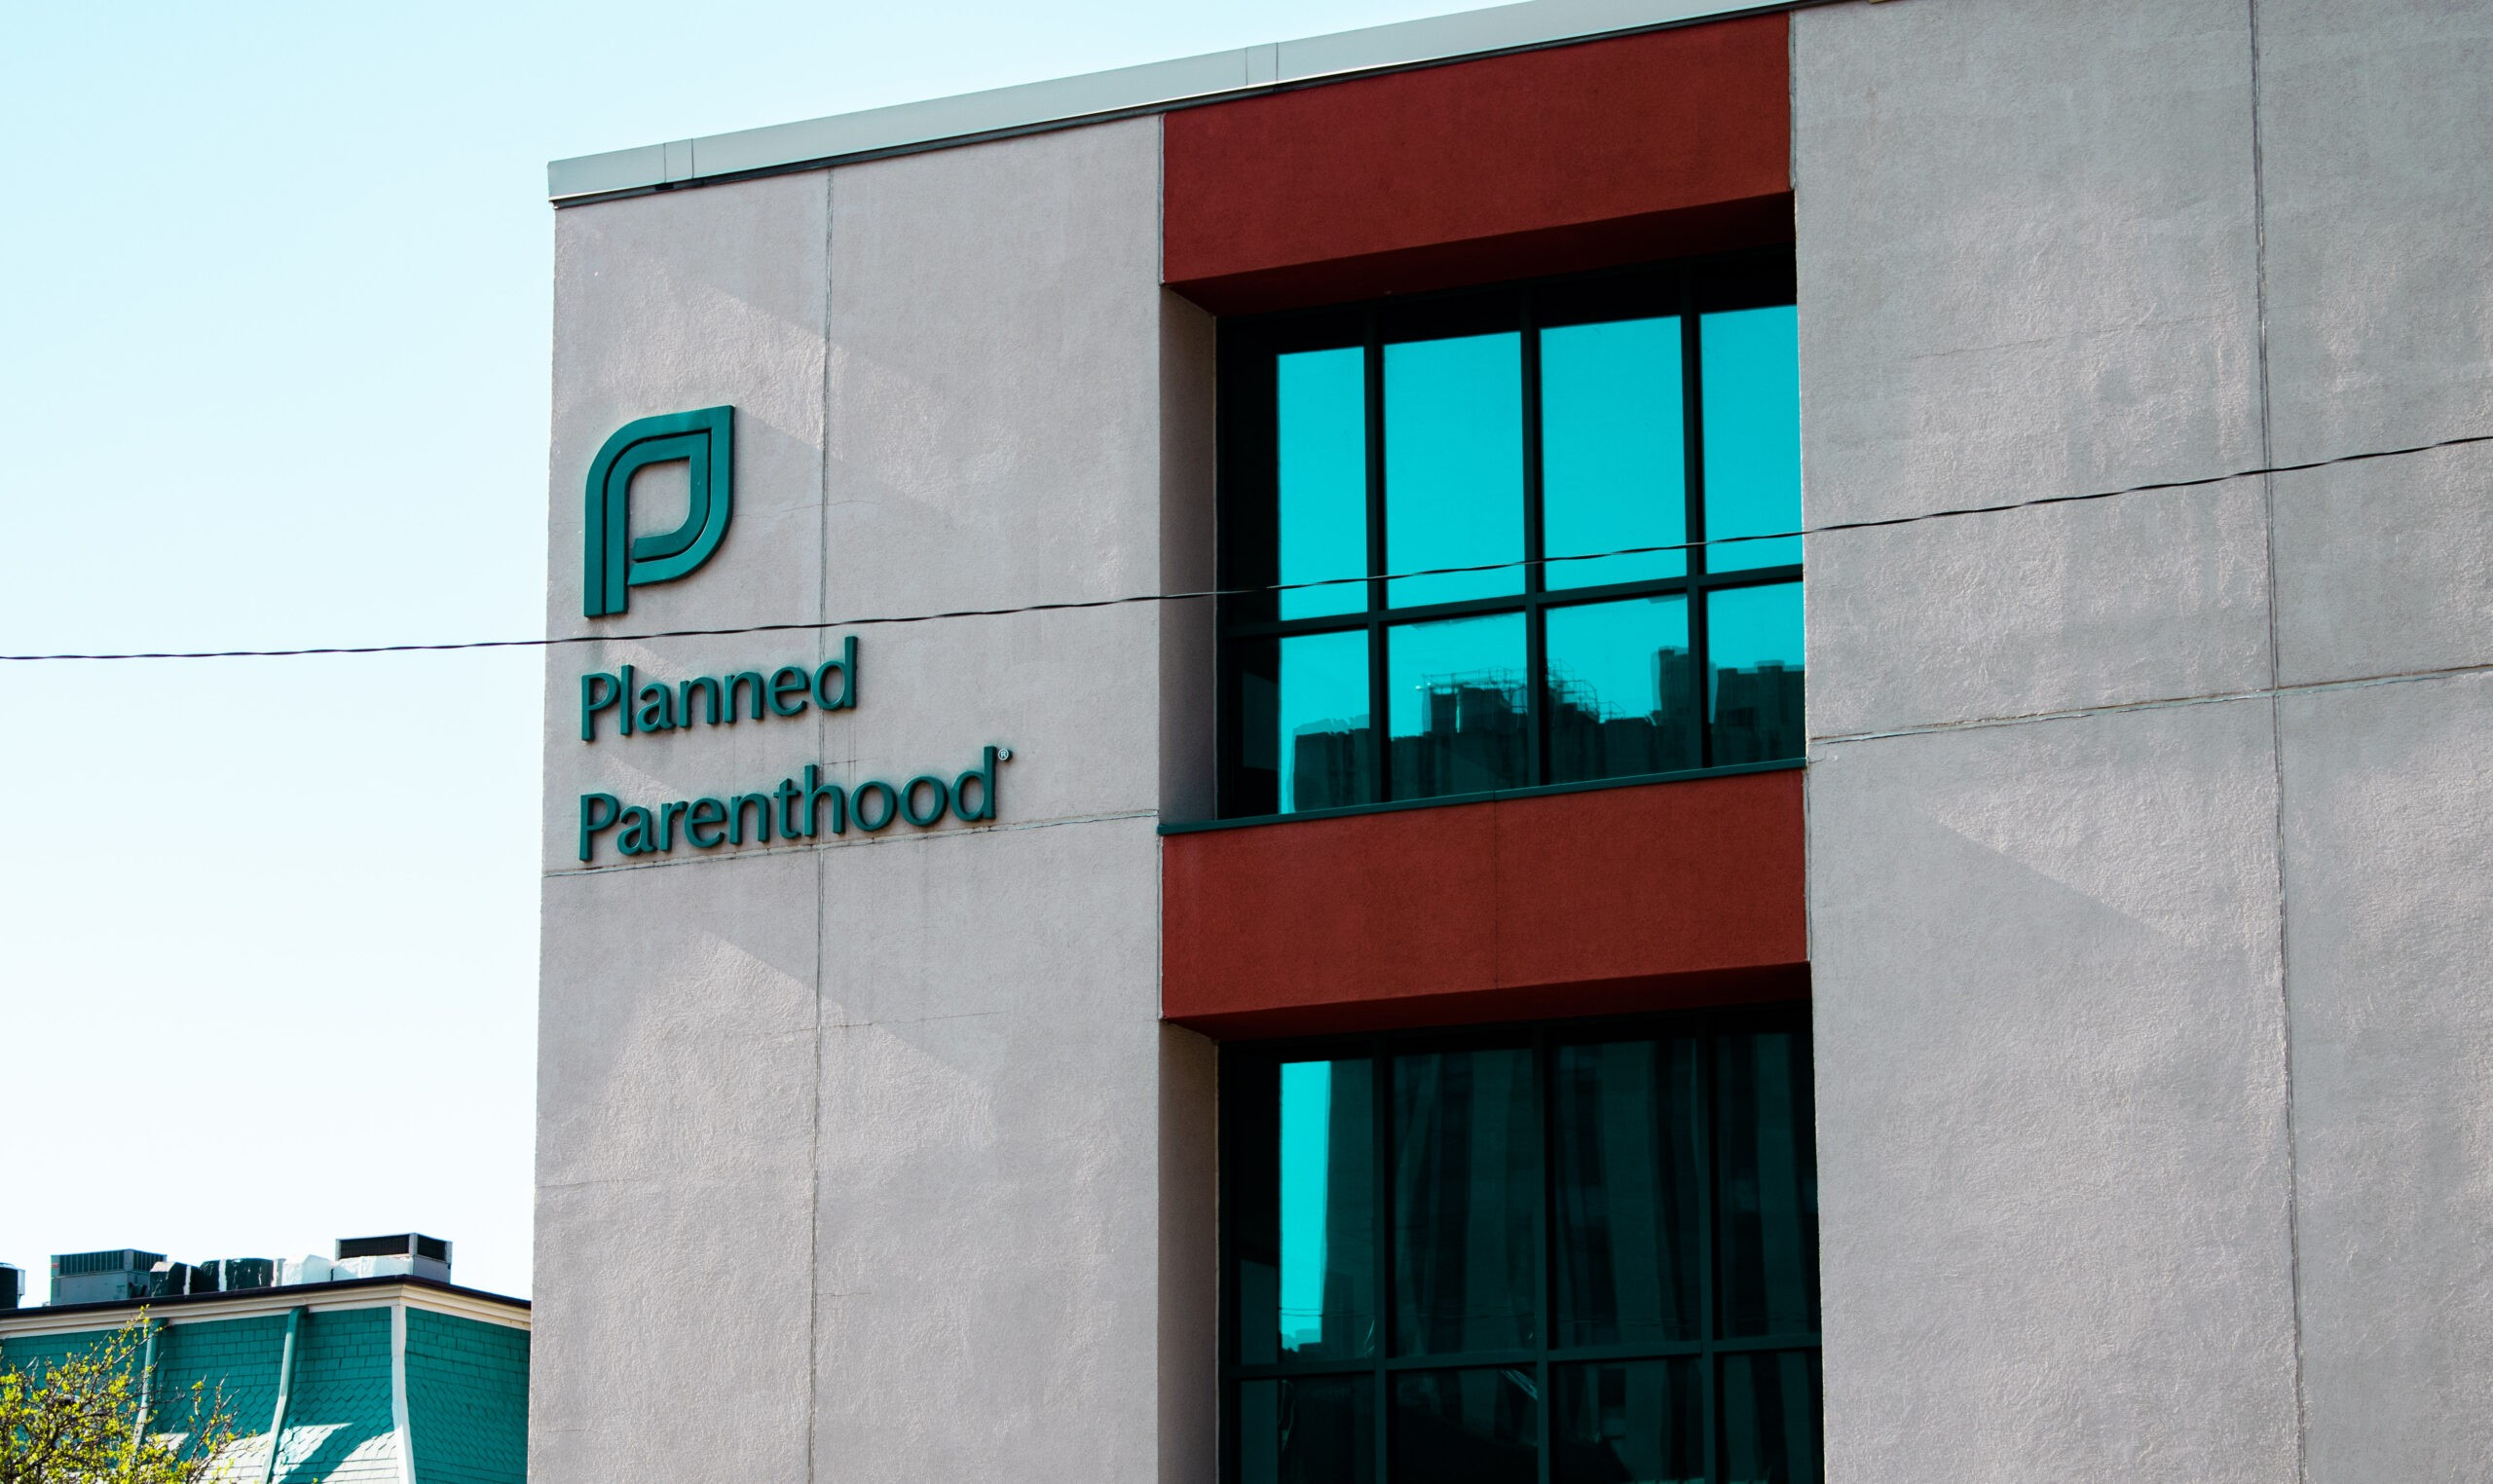 Planned Parenthood in Downtown Dayton